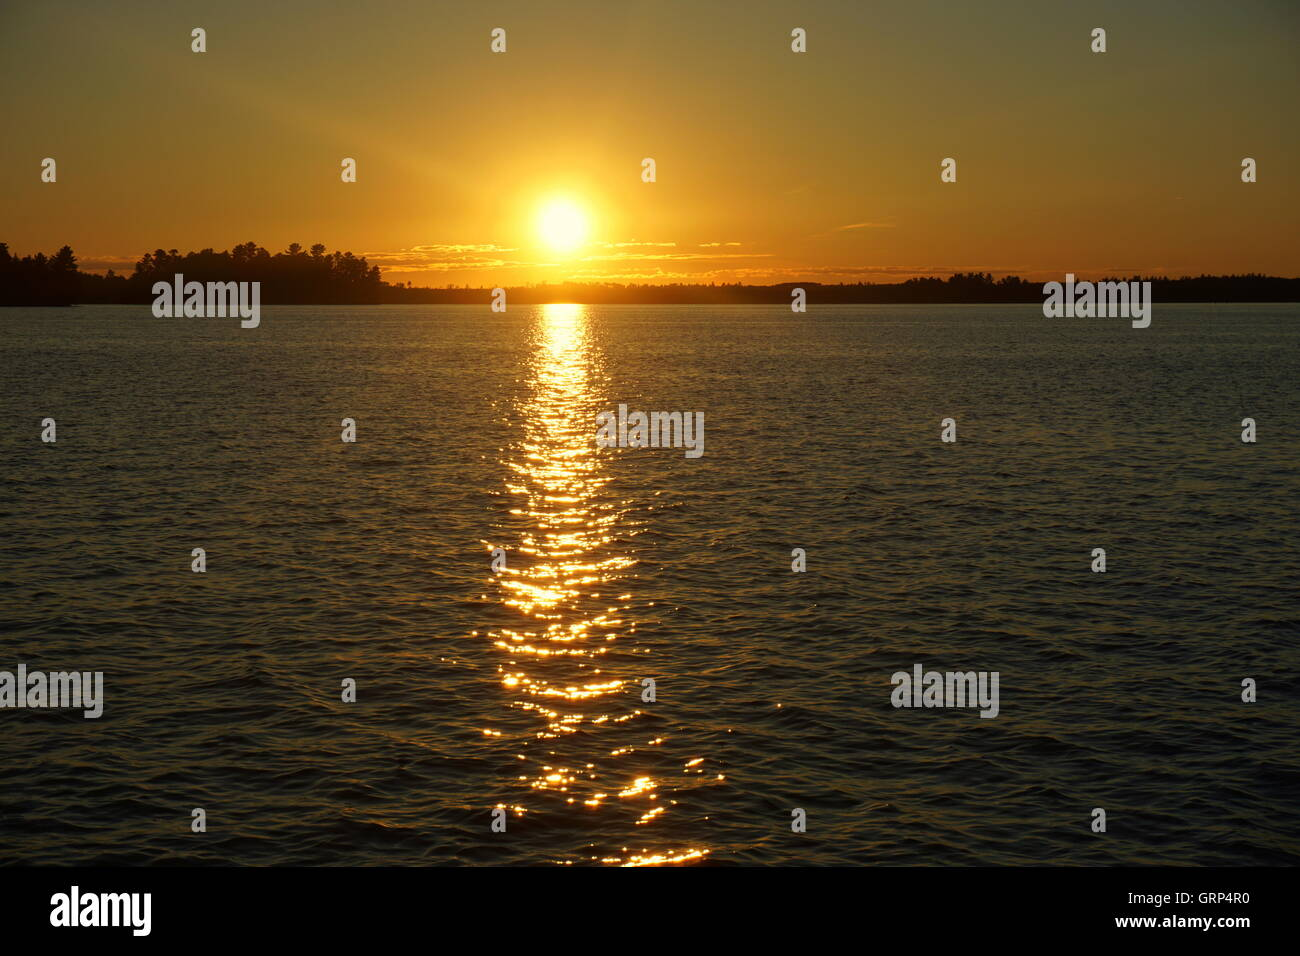 PELICAN LAKE SUNSETS - Stock Image